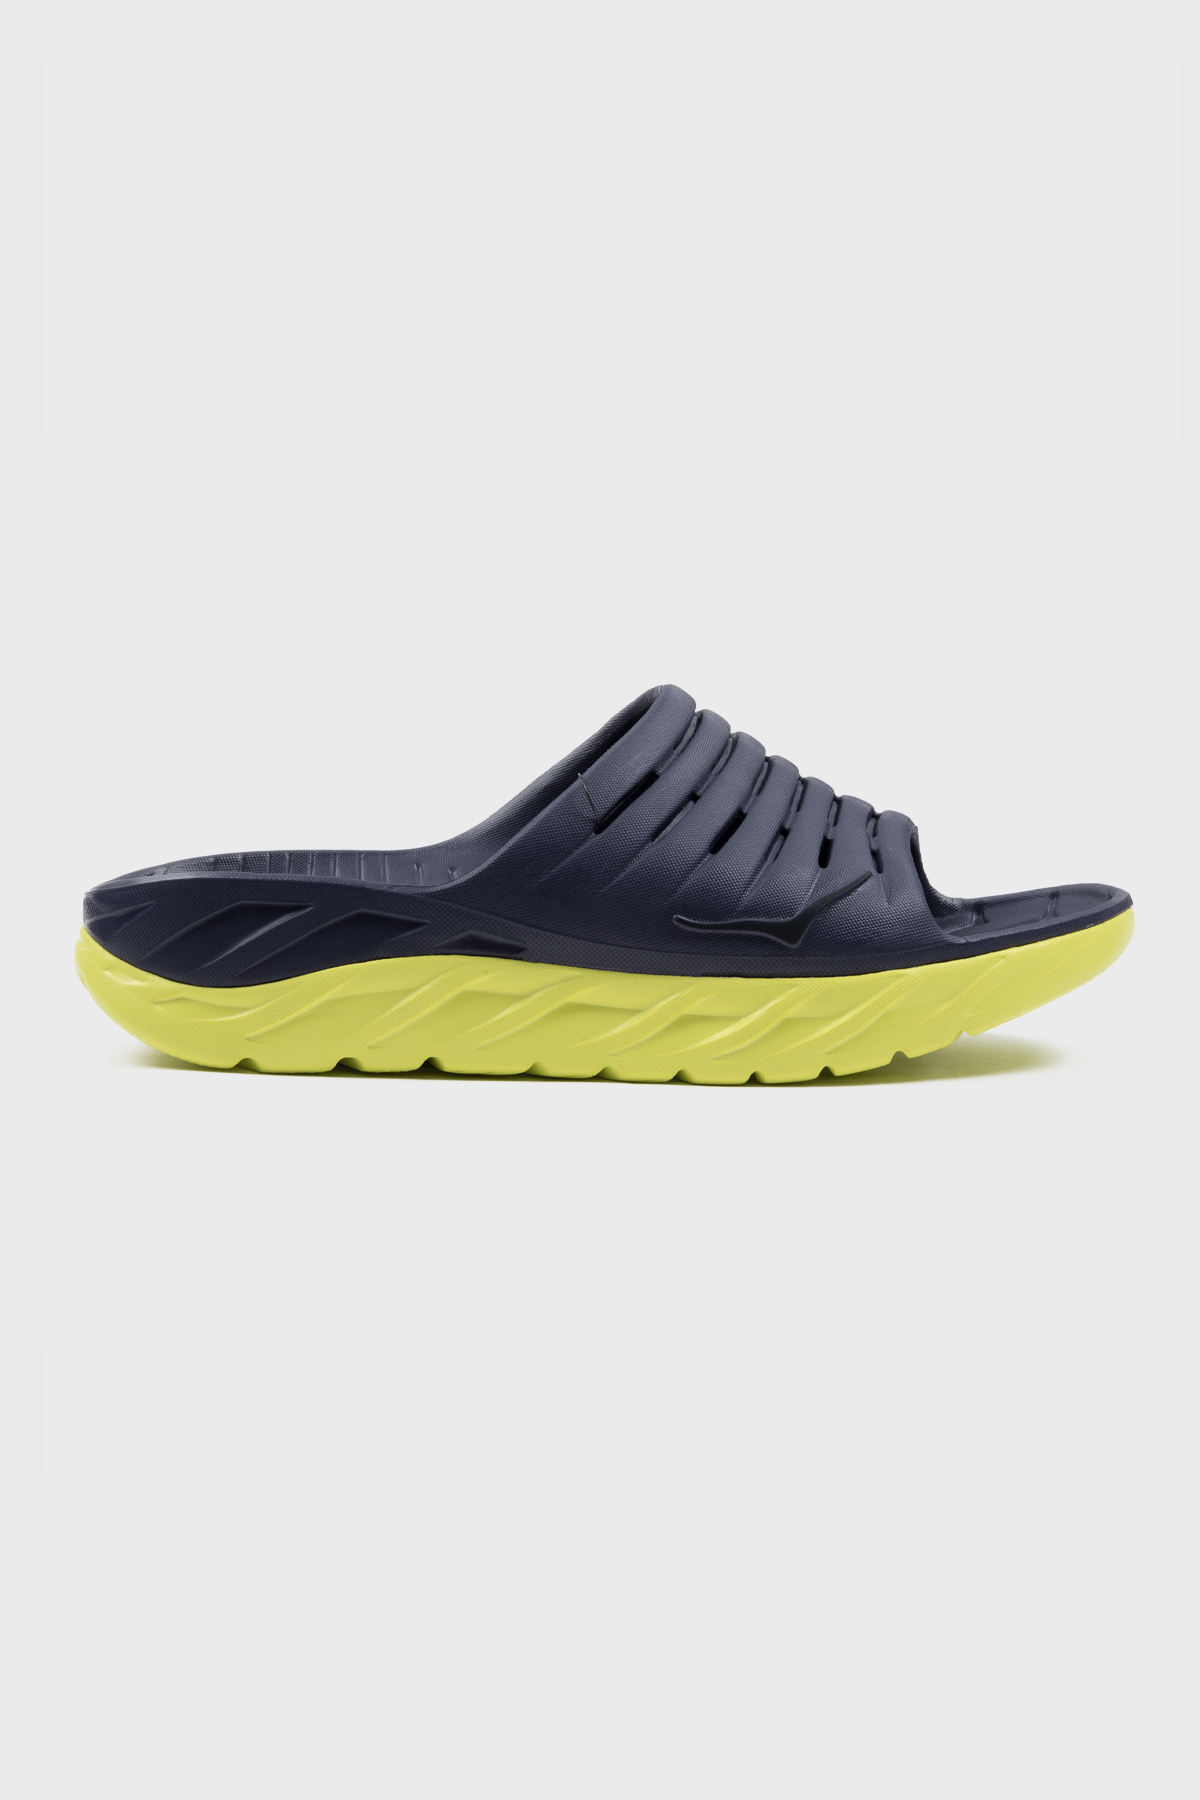 Hoka one one - Ora recovery Slide 2 - Odyssey Grey Evening Primrose